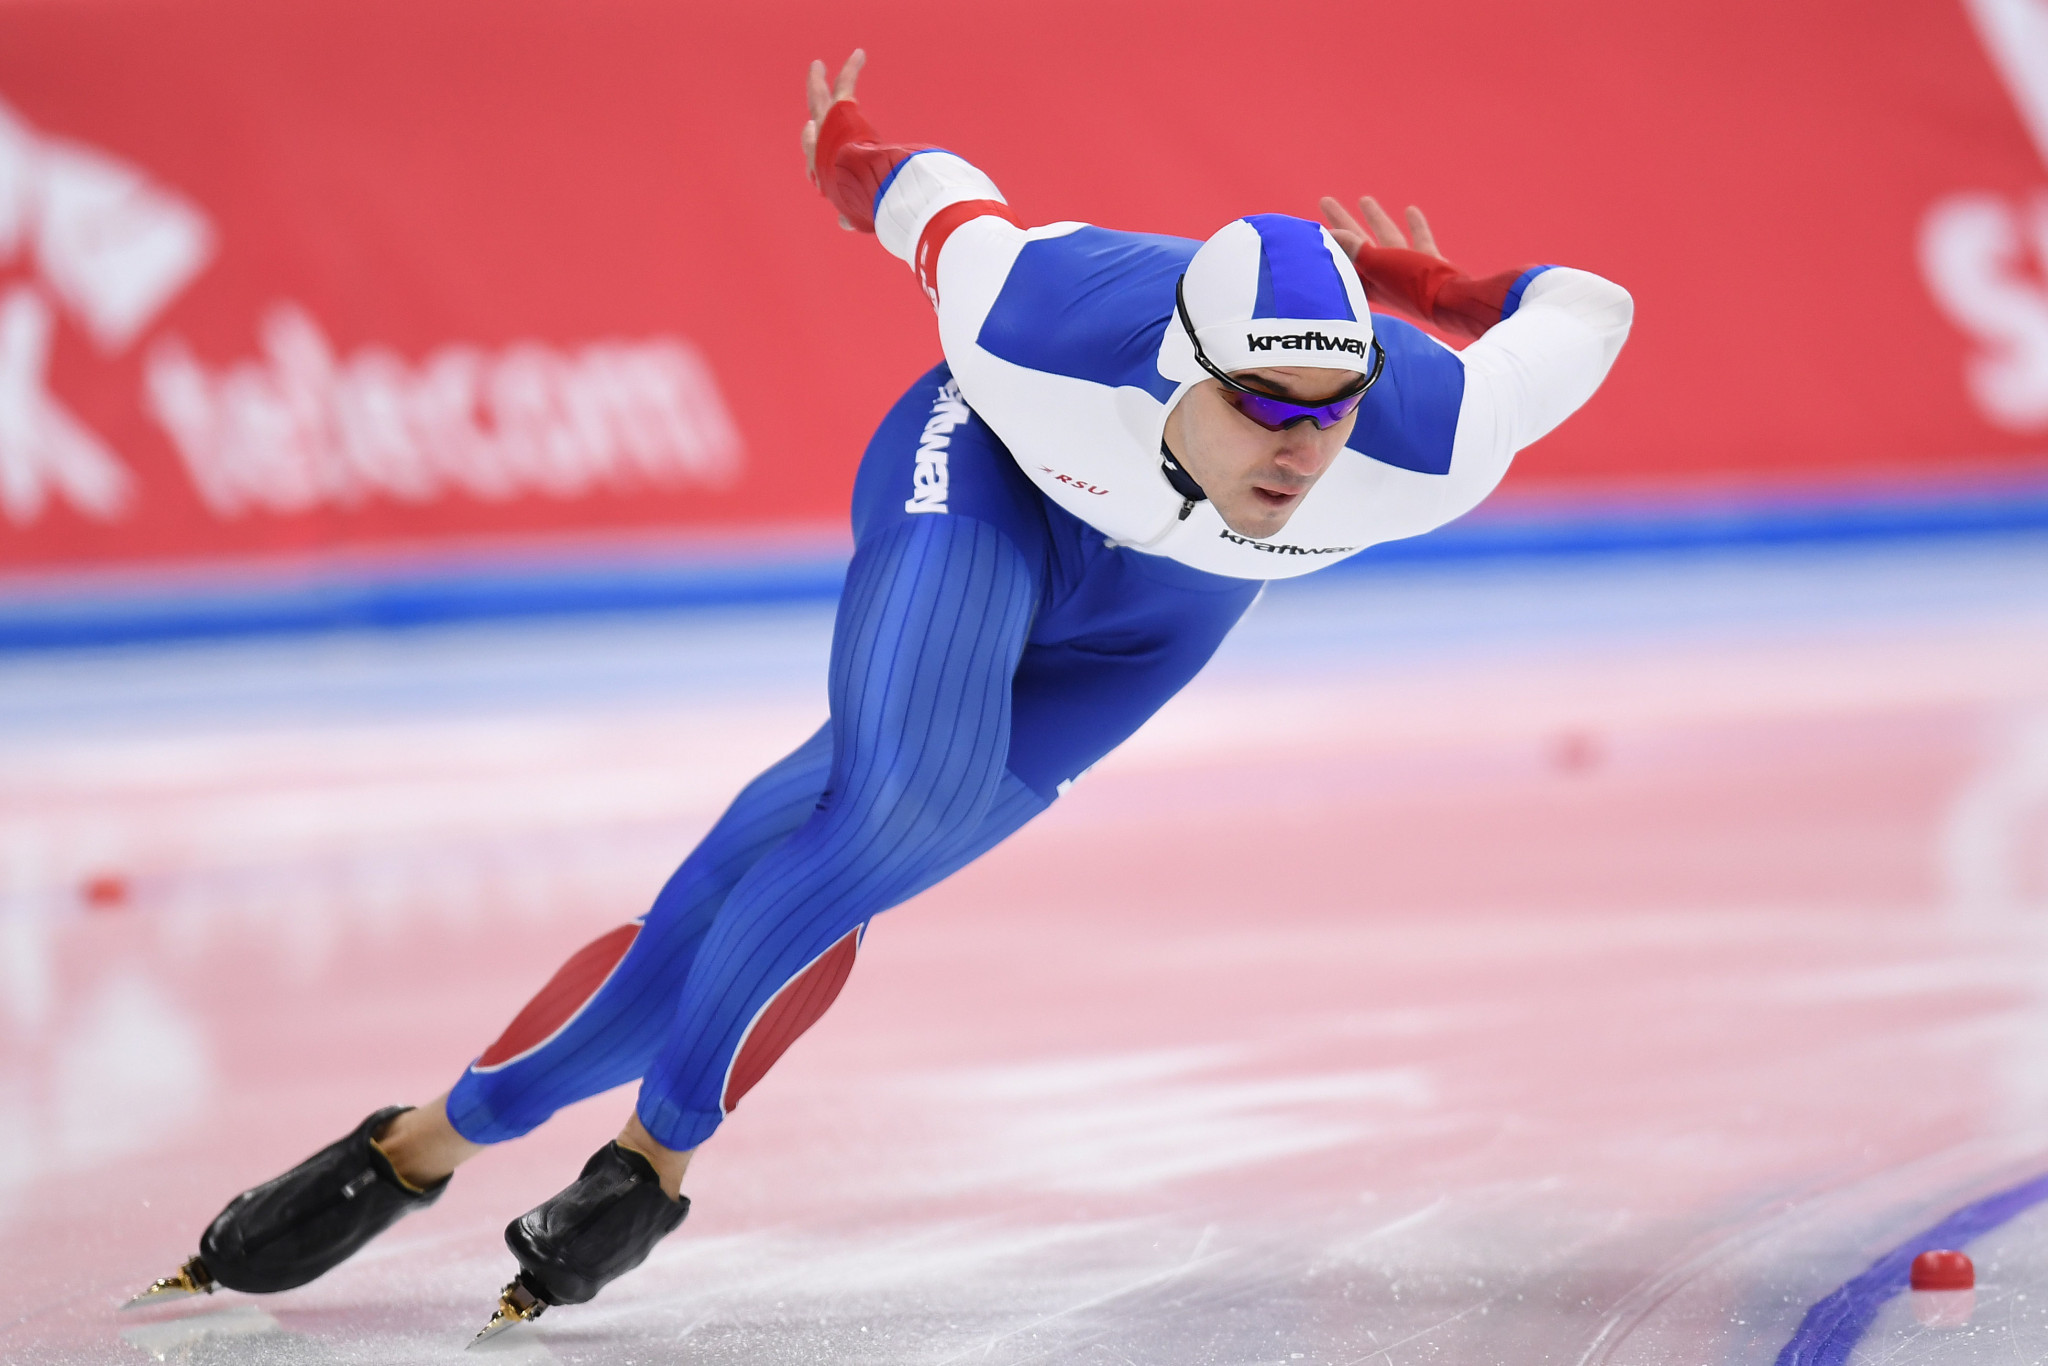 Murashov earns 500m victory at ISU Speed Skating World Cup in Calgary